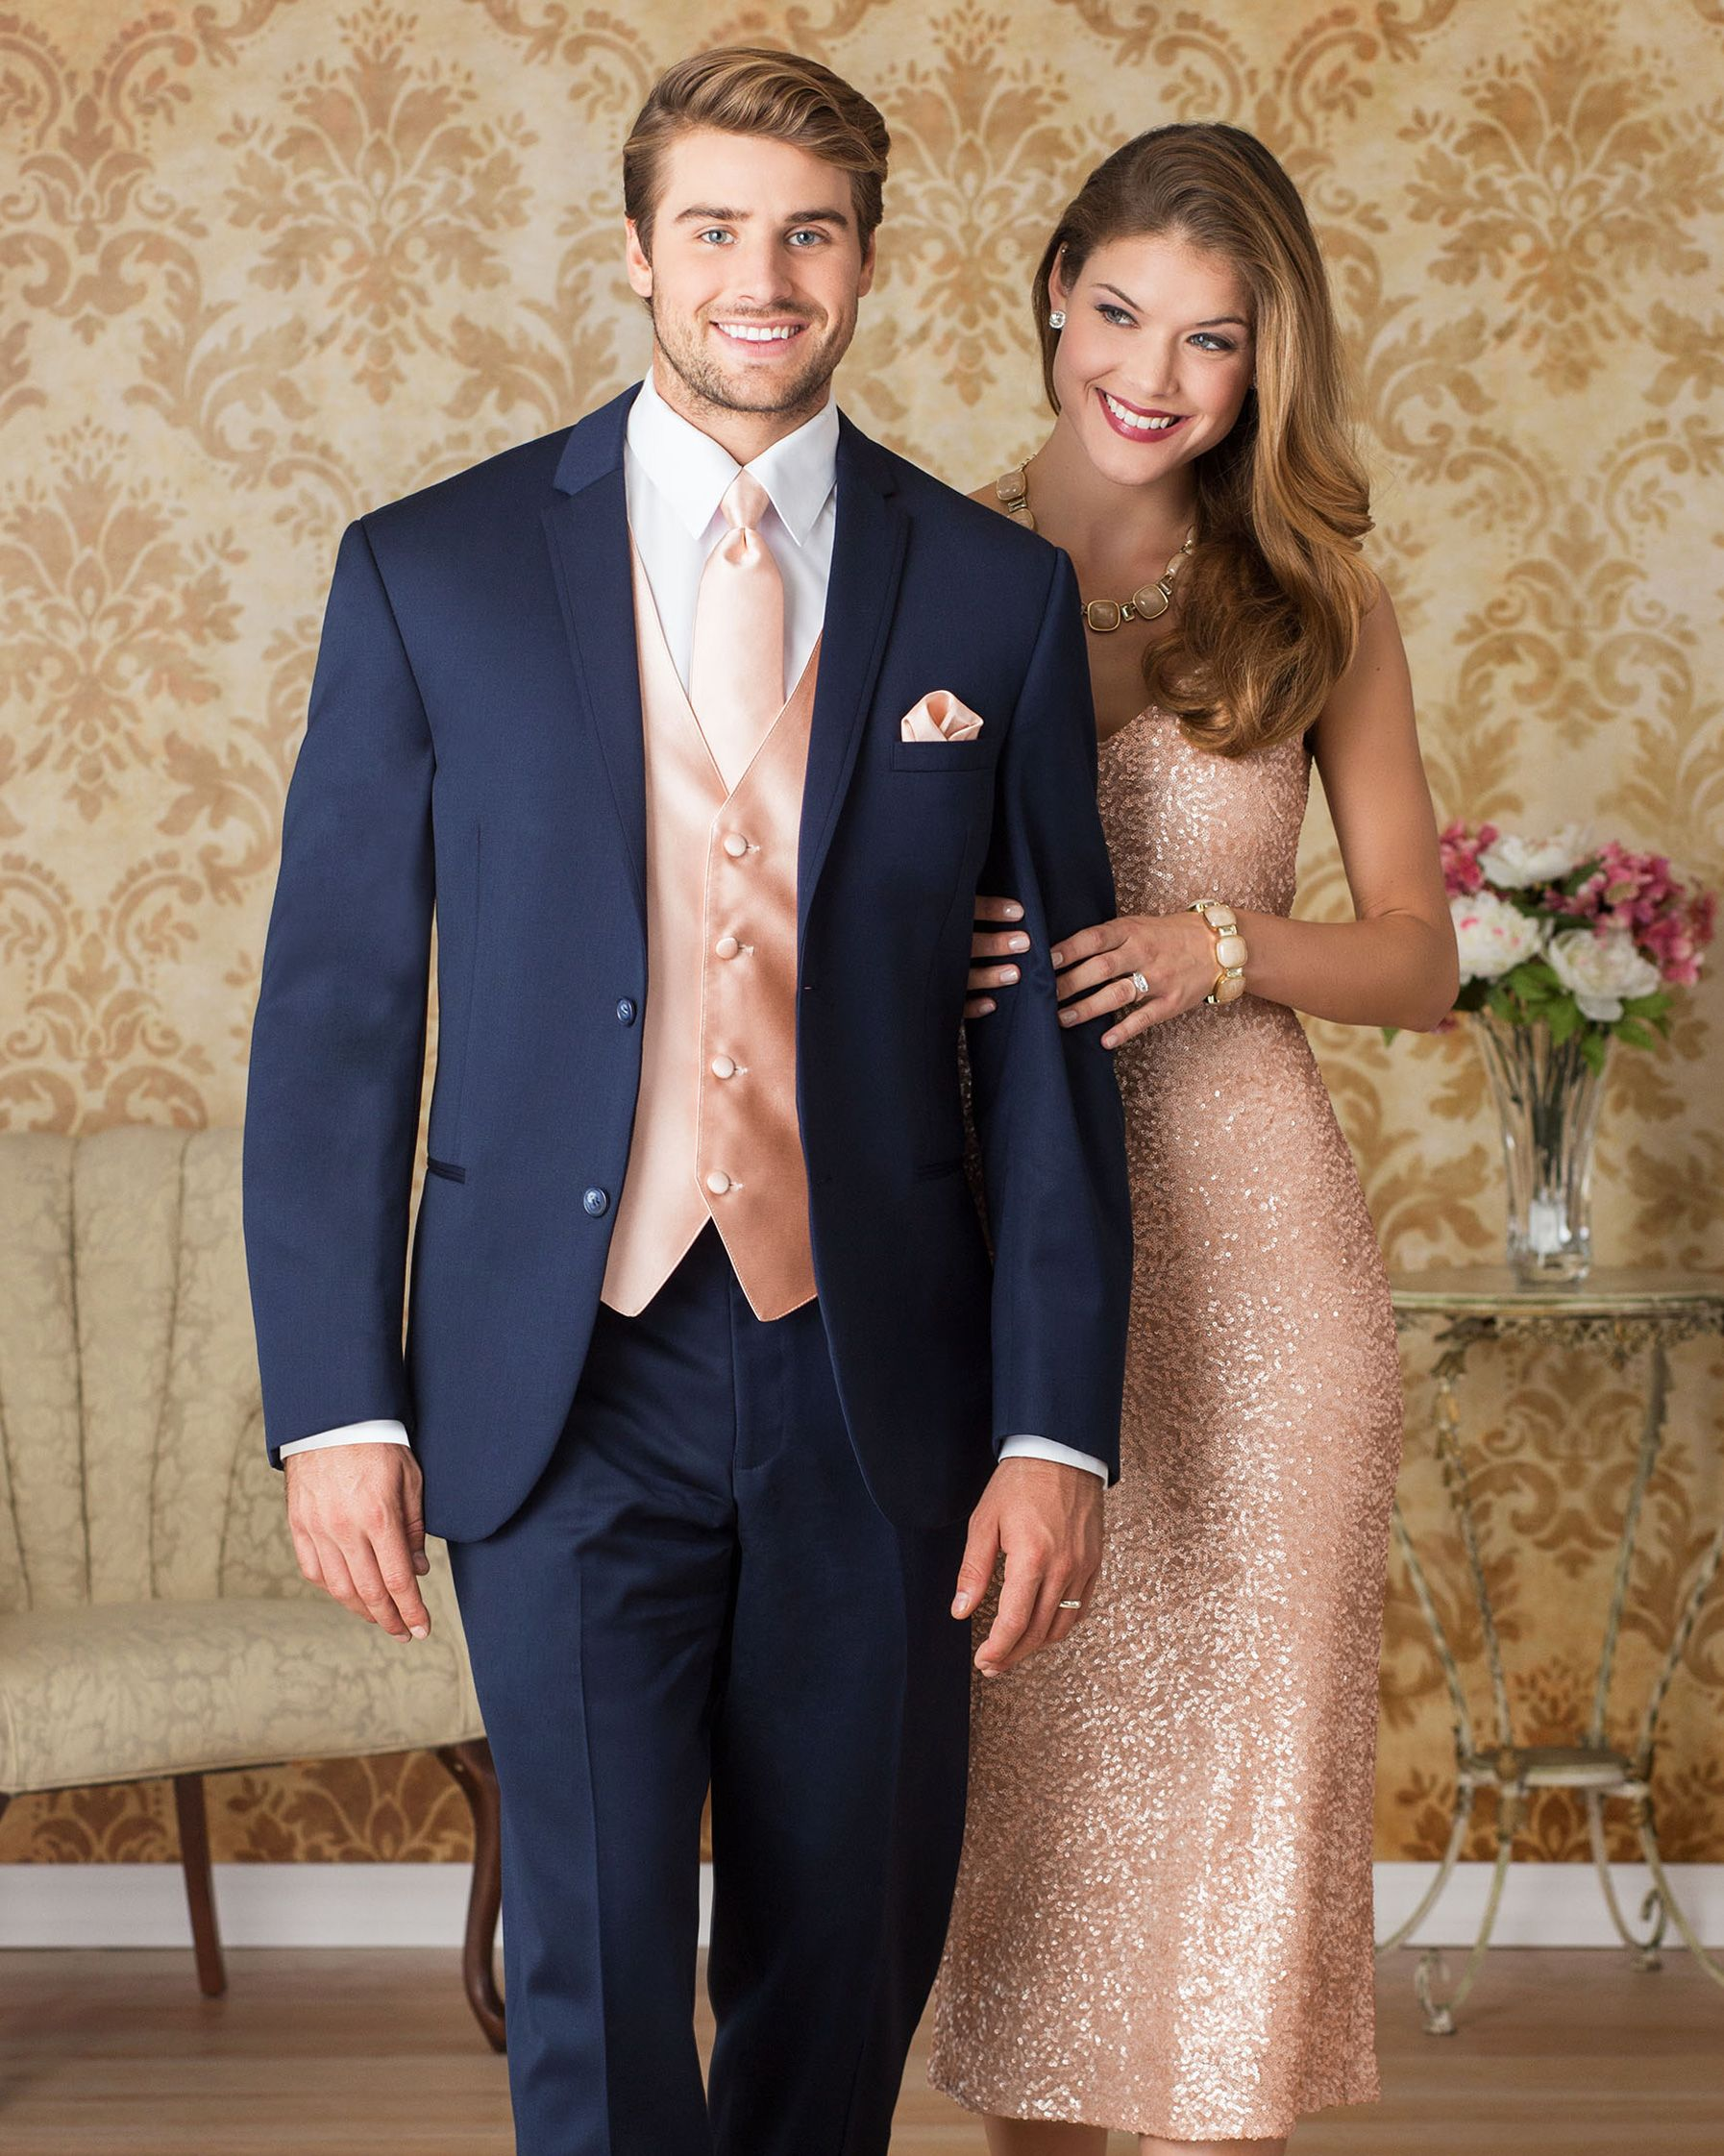 The new michael kors sterling wedding suit in navy prom stuff